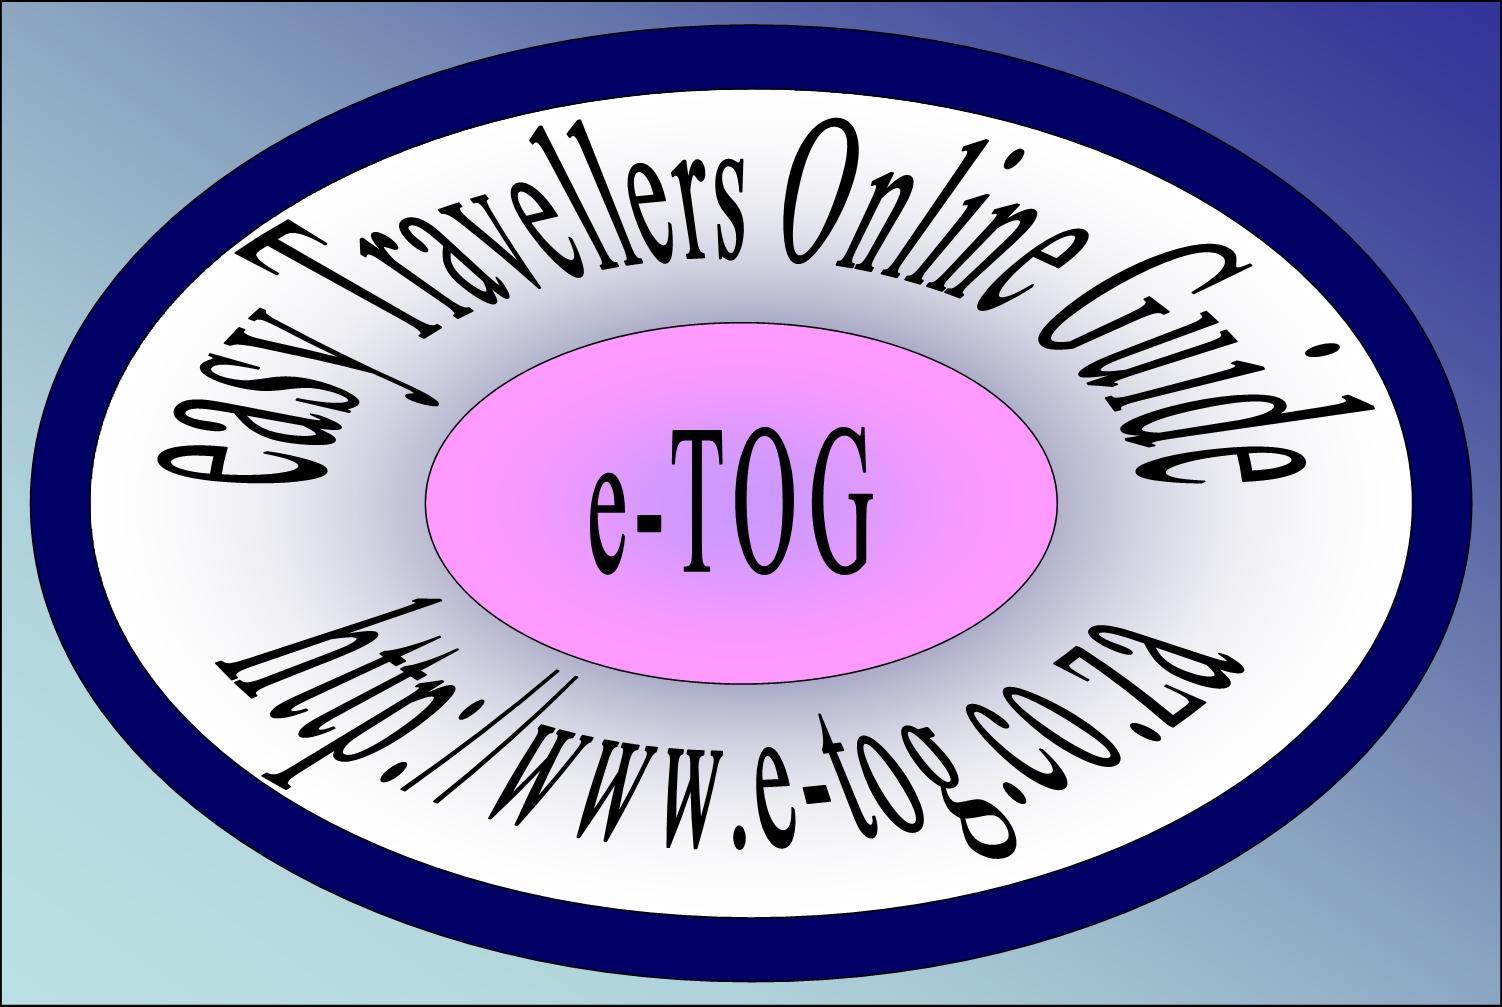 This is the logo for Easy Travellers online Guide